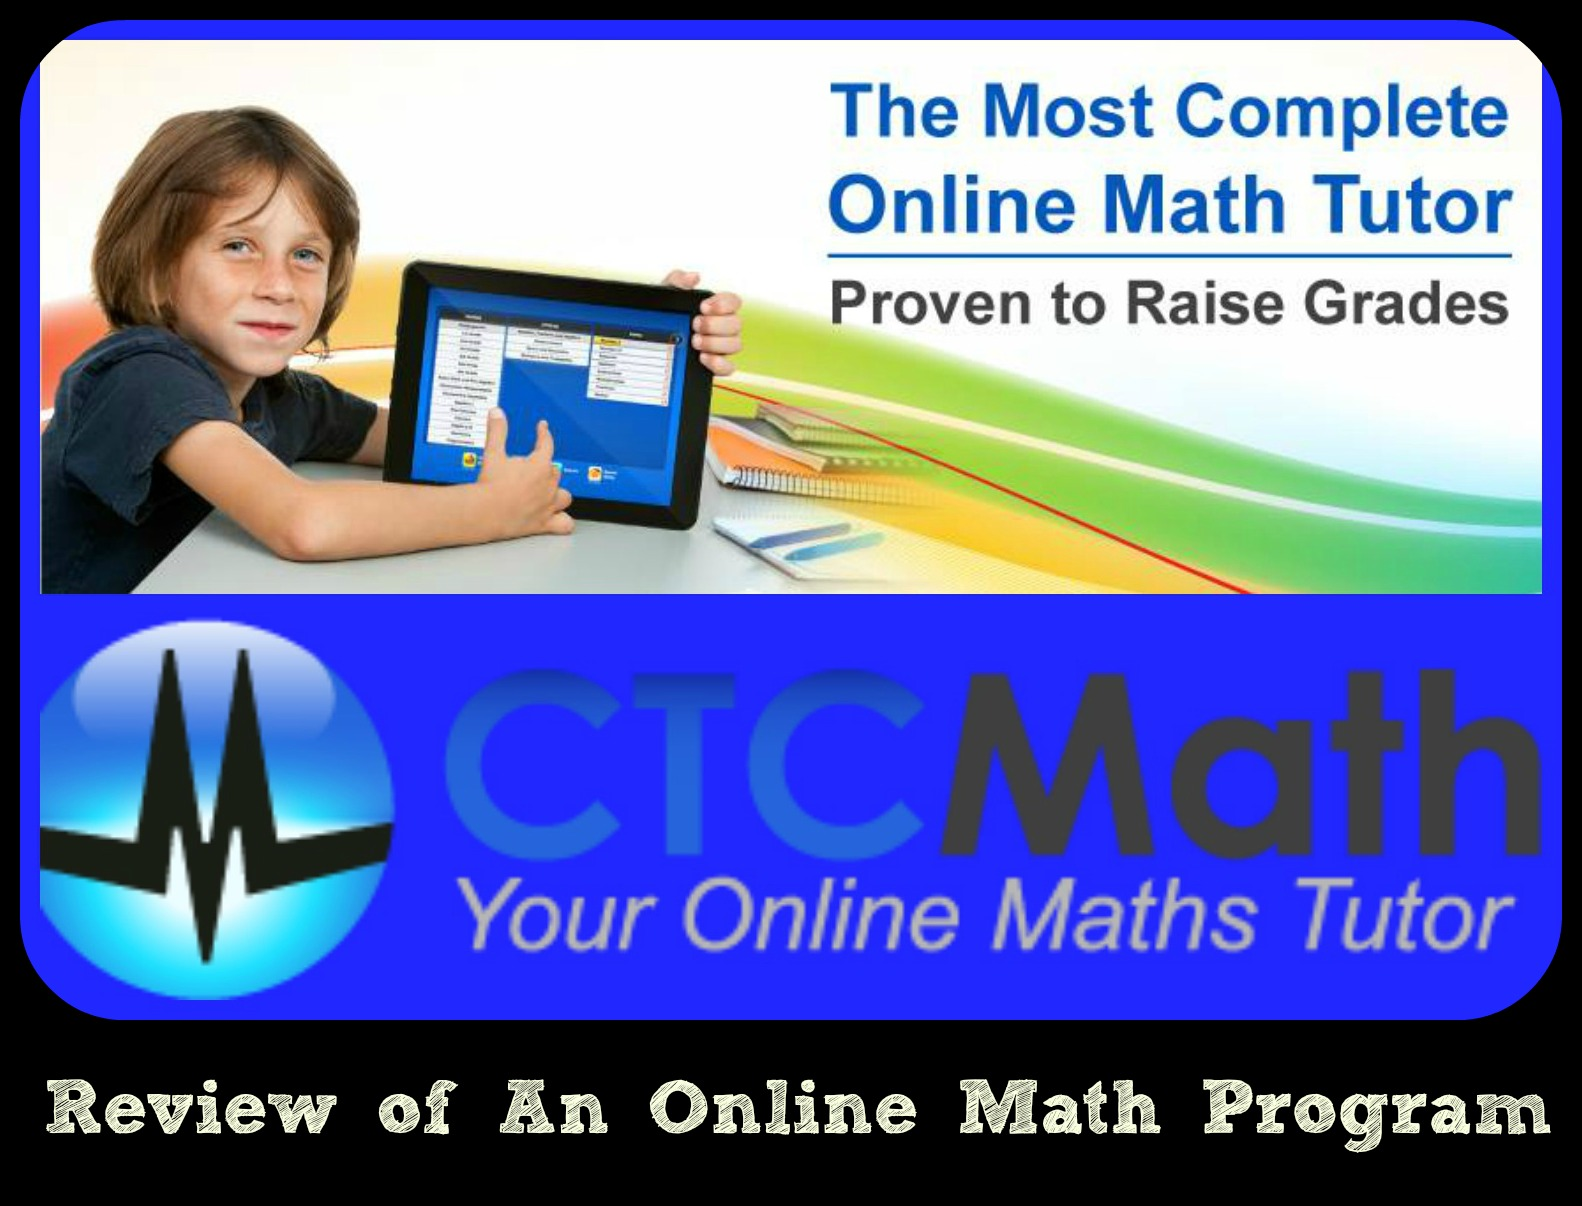 Review of CTC Math: An Online Math Program - As We Walk Along the Road